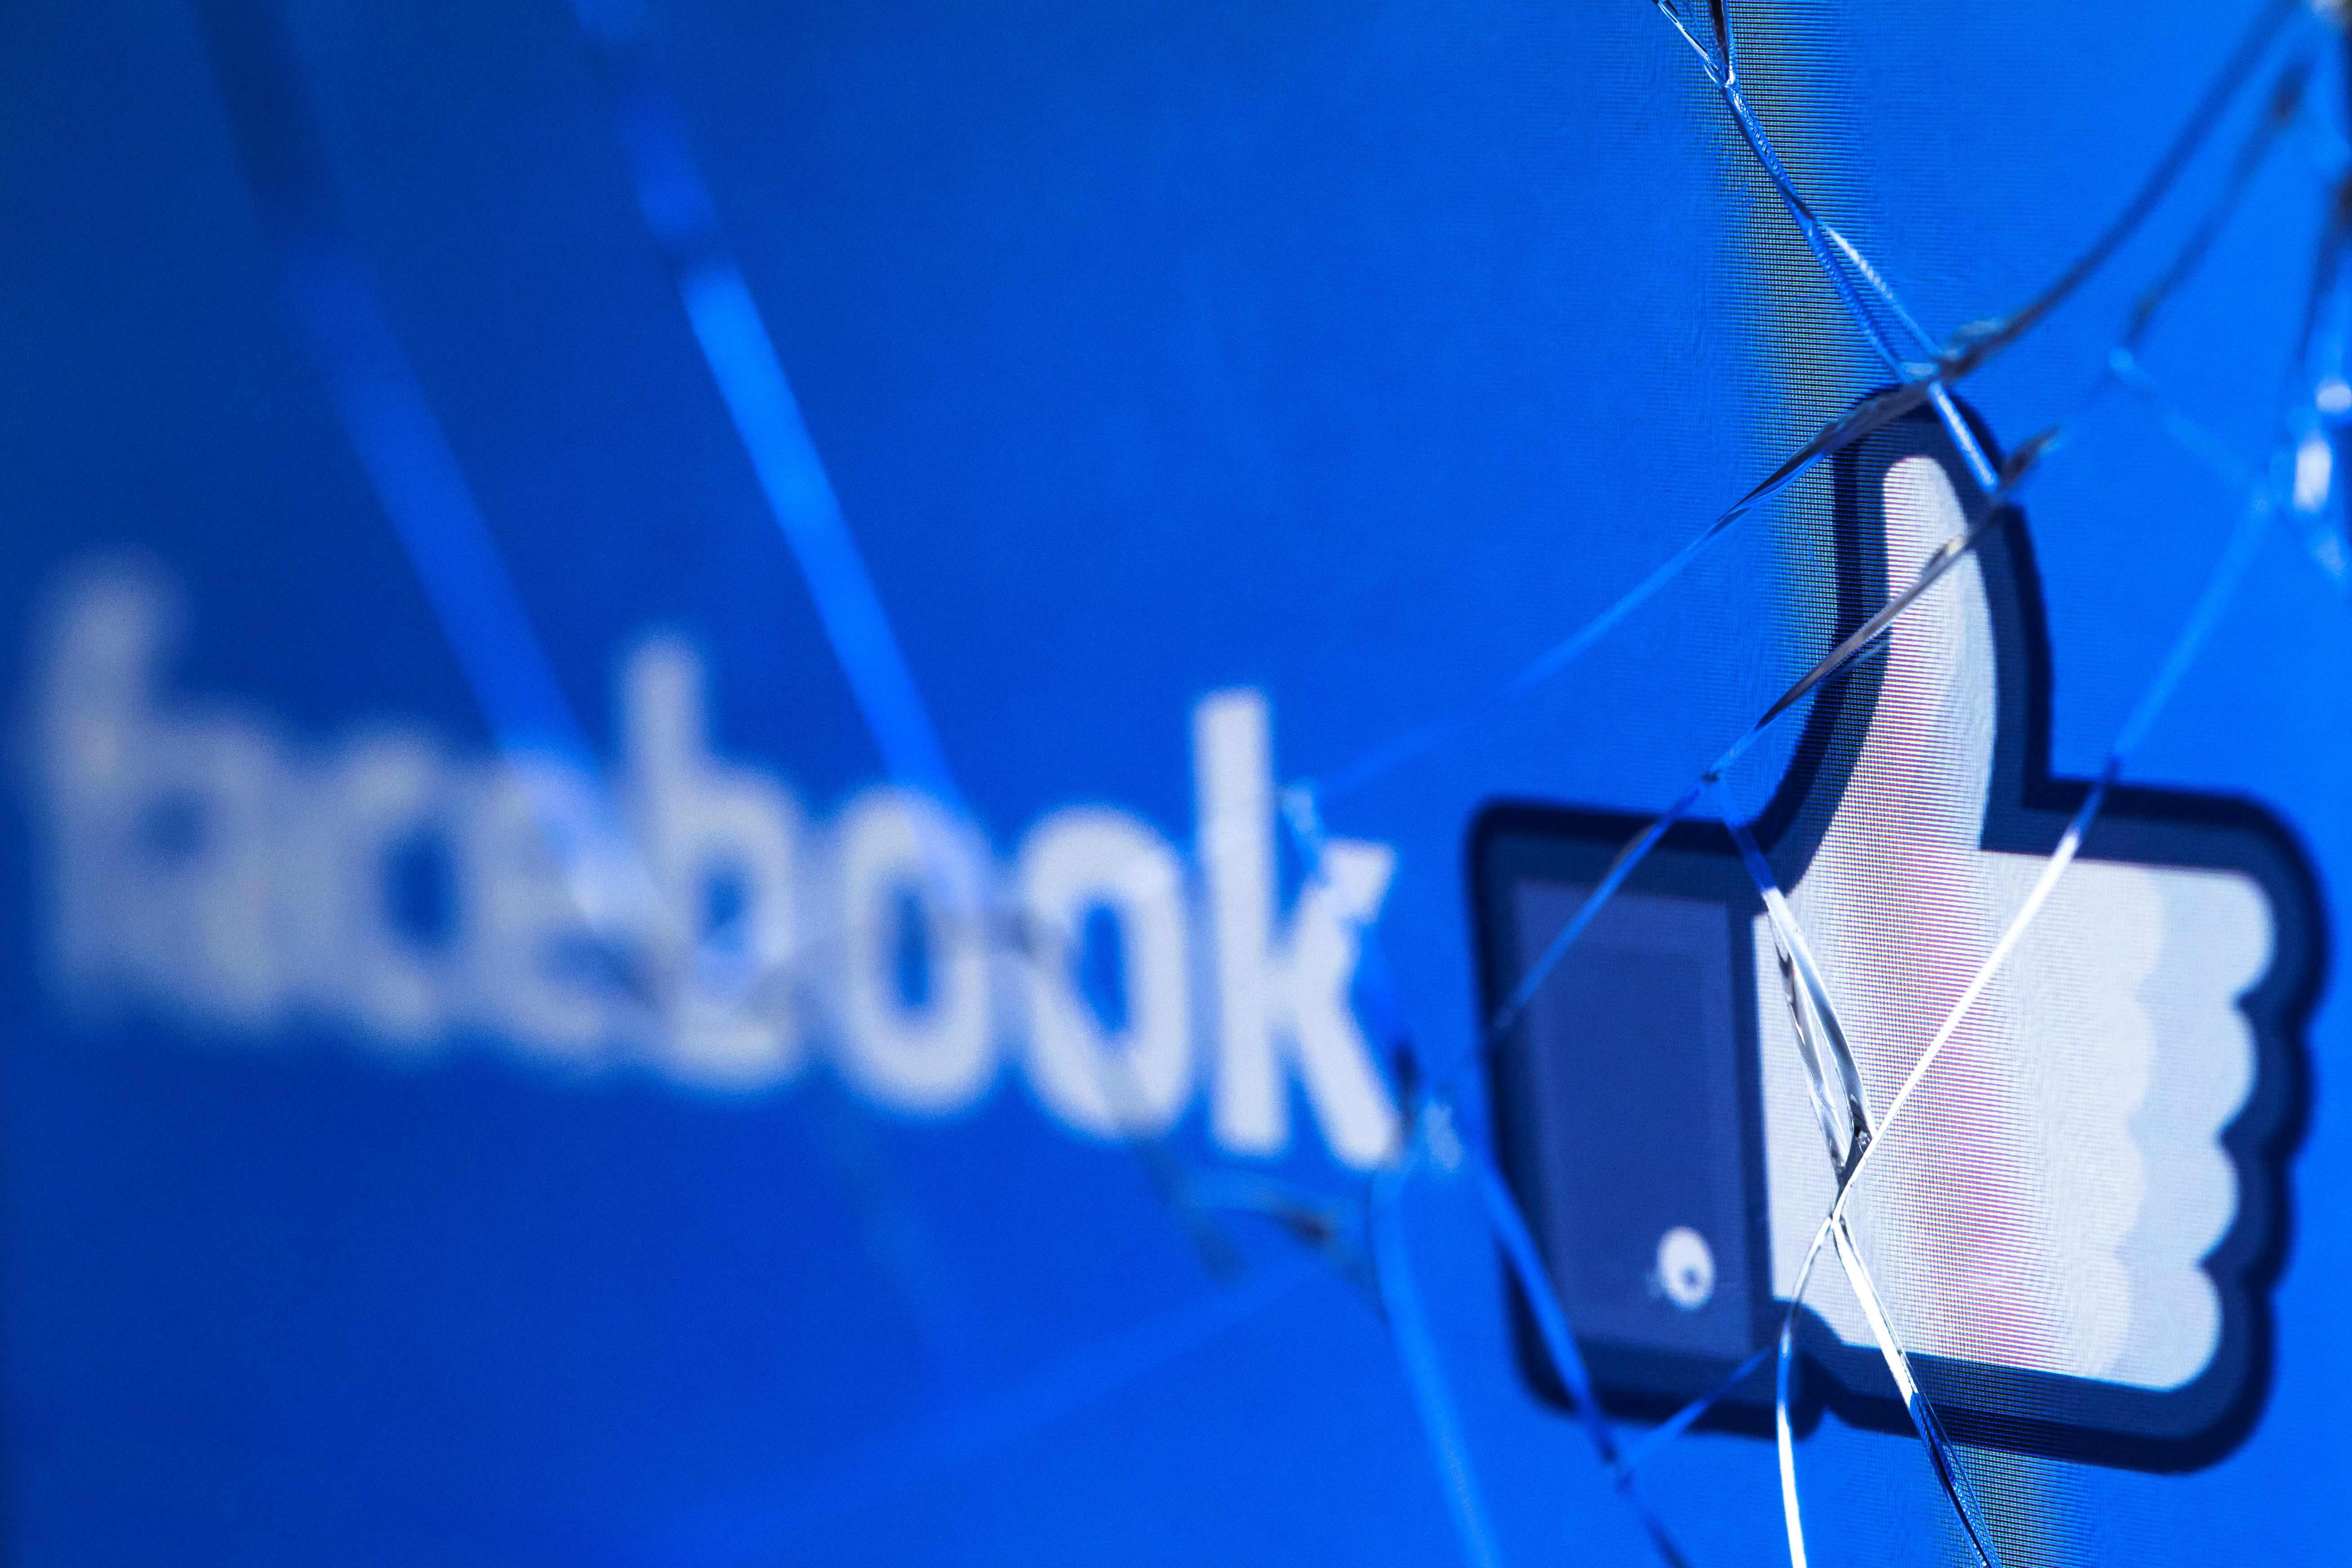 Facebook-owned platforms all stopped working around 11:30 a.m. ETMonday morning.